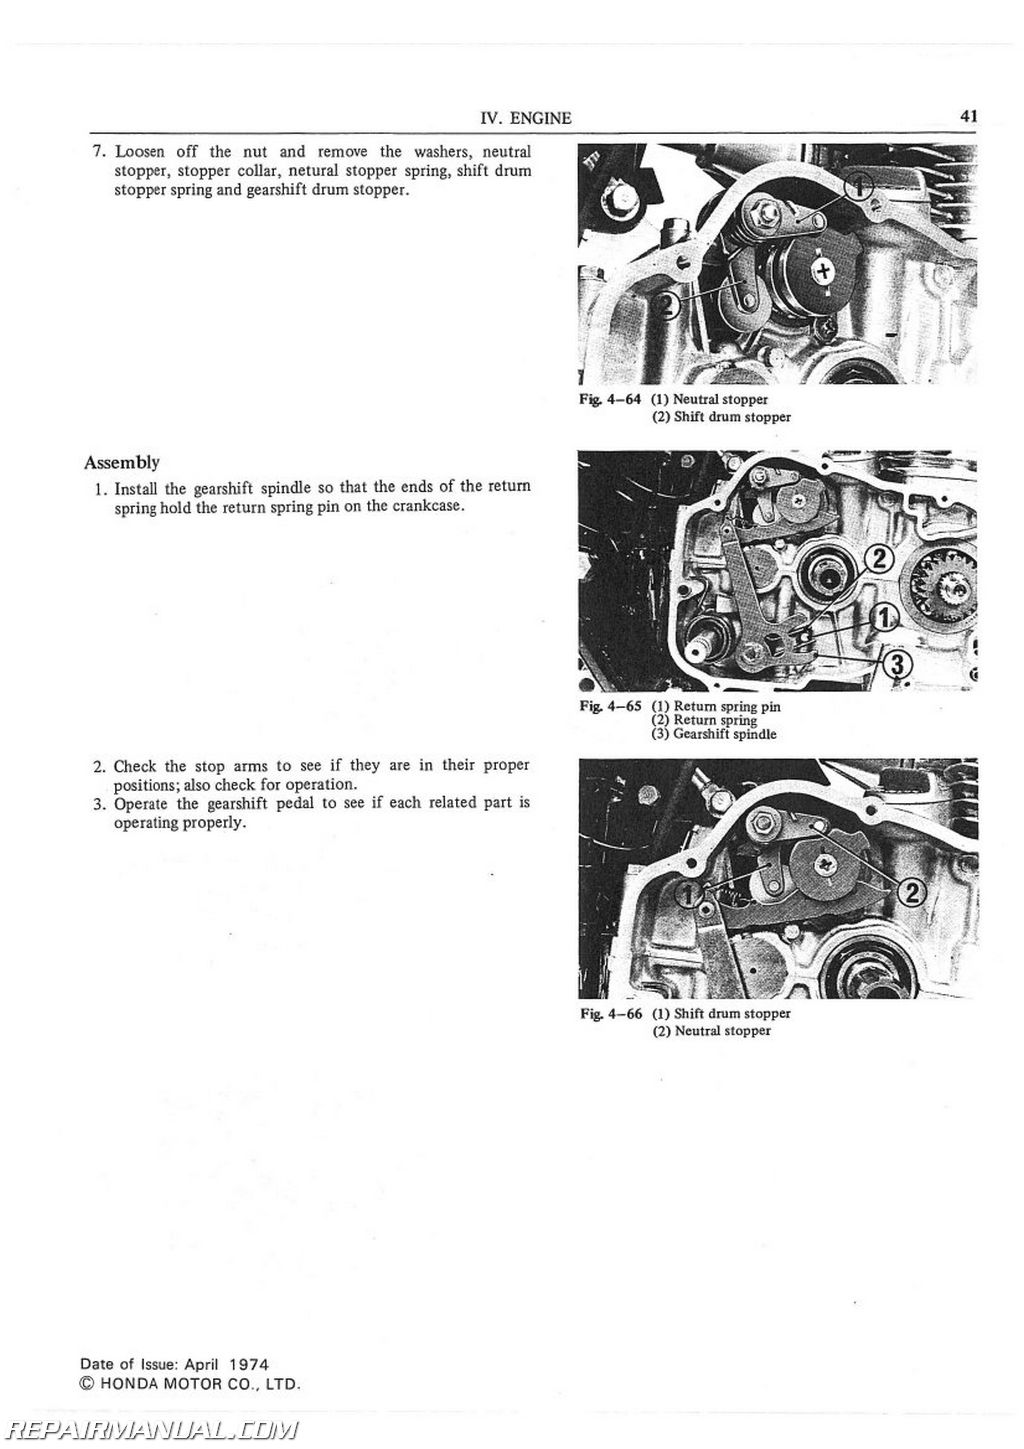 1975 1976 Honda Cb500t Motorcycle Service Manual